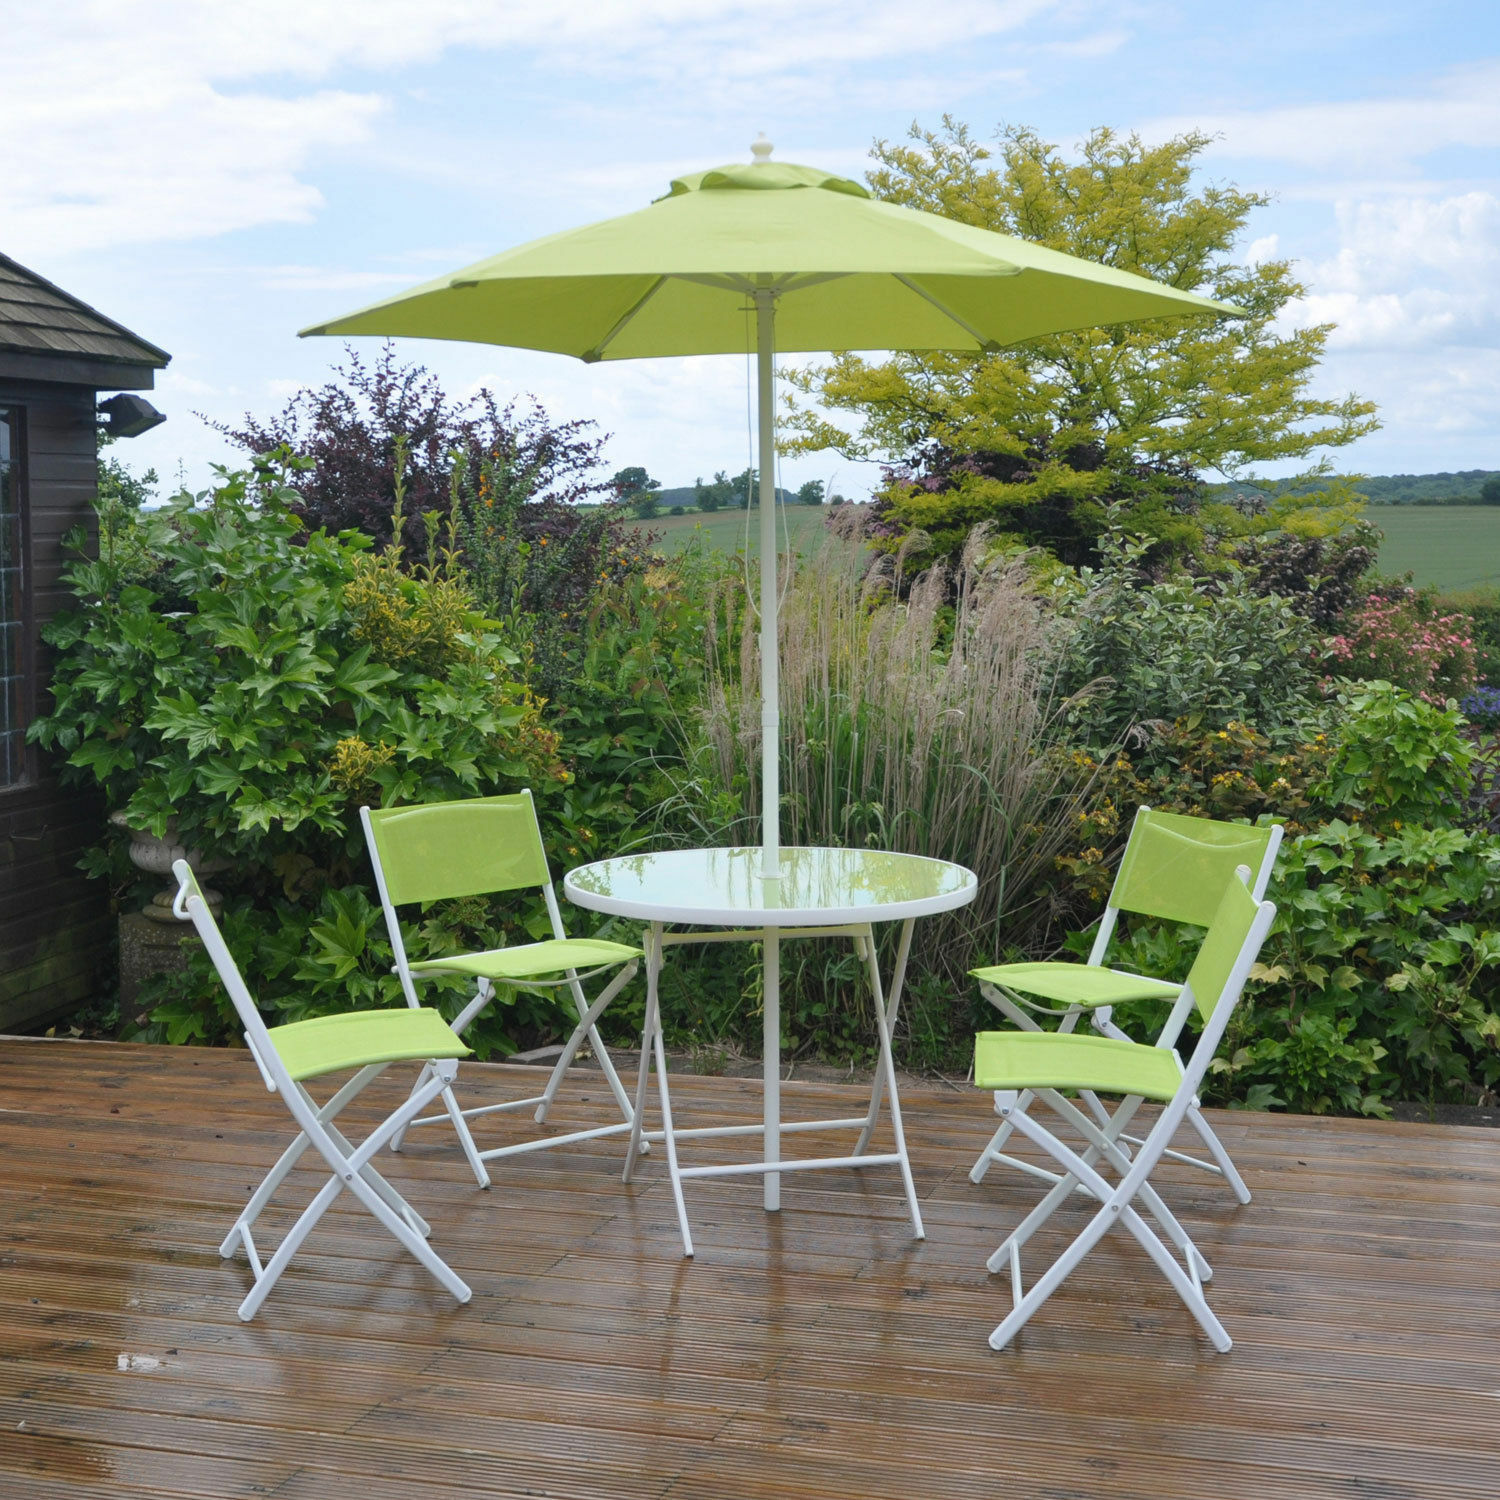 6pc Lime Green Garden Patio Furniture Set Dining